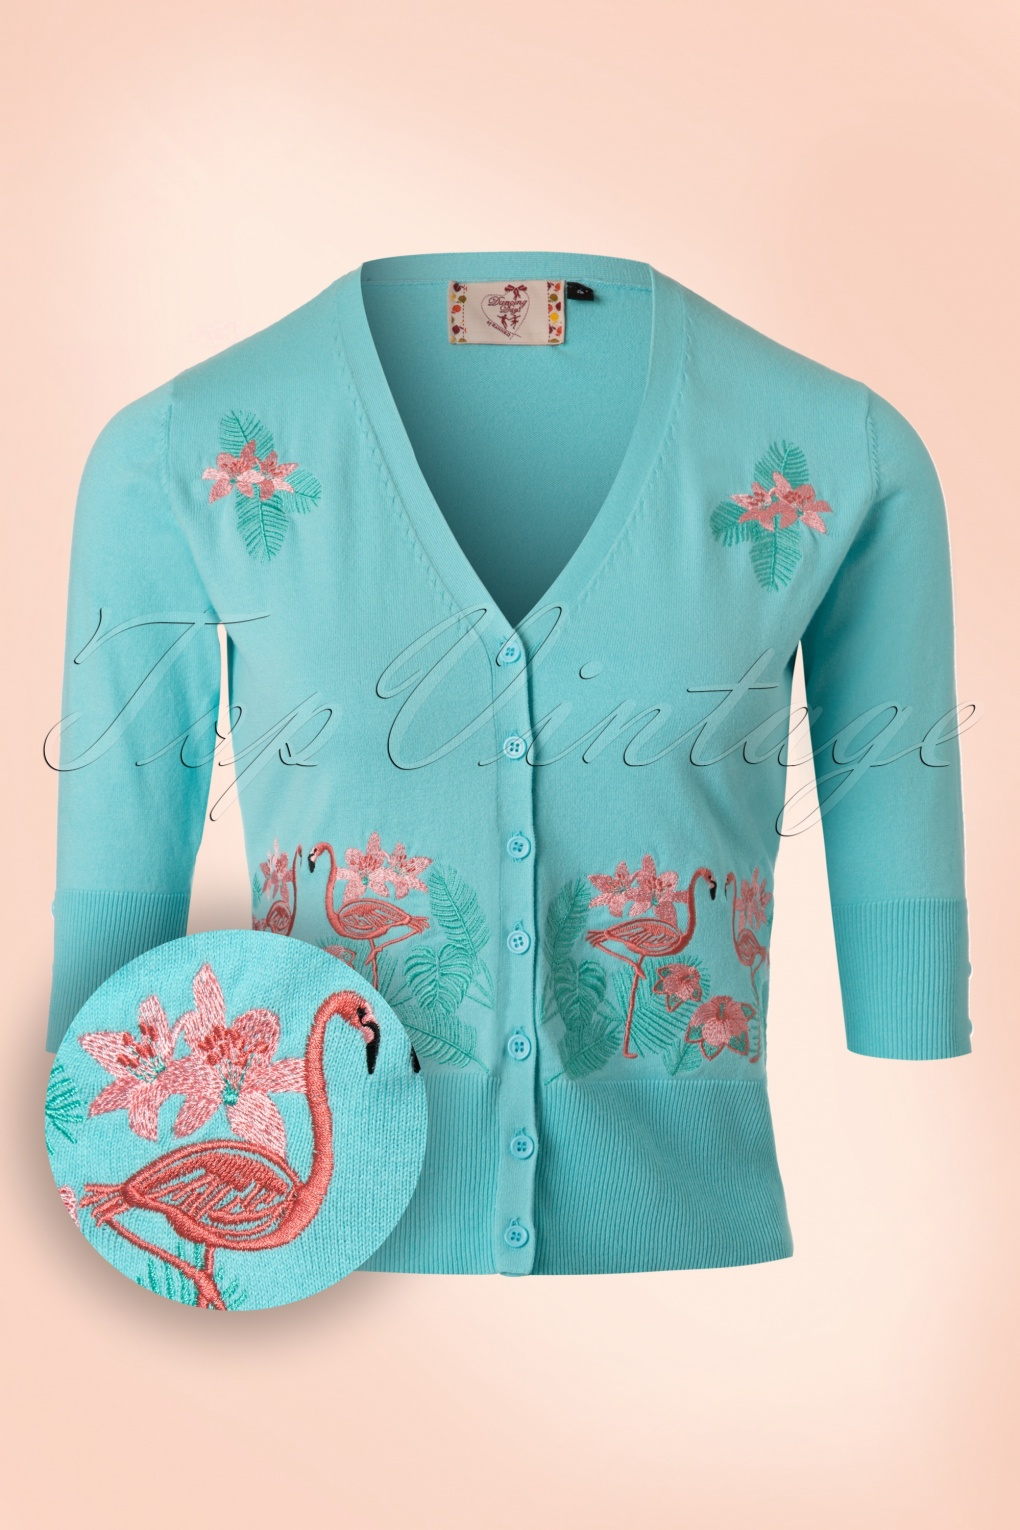 Retro Vintage Sweaters 50s Face To Face Flamingo Cardigan in Light Blue £39.05 AT vintagedancer.com